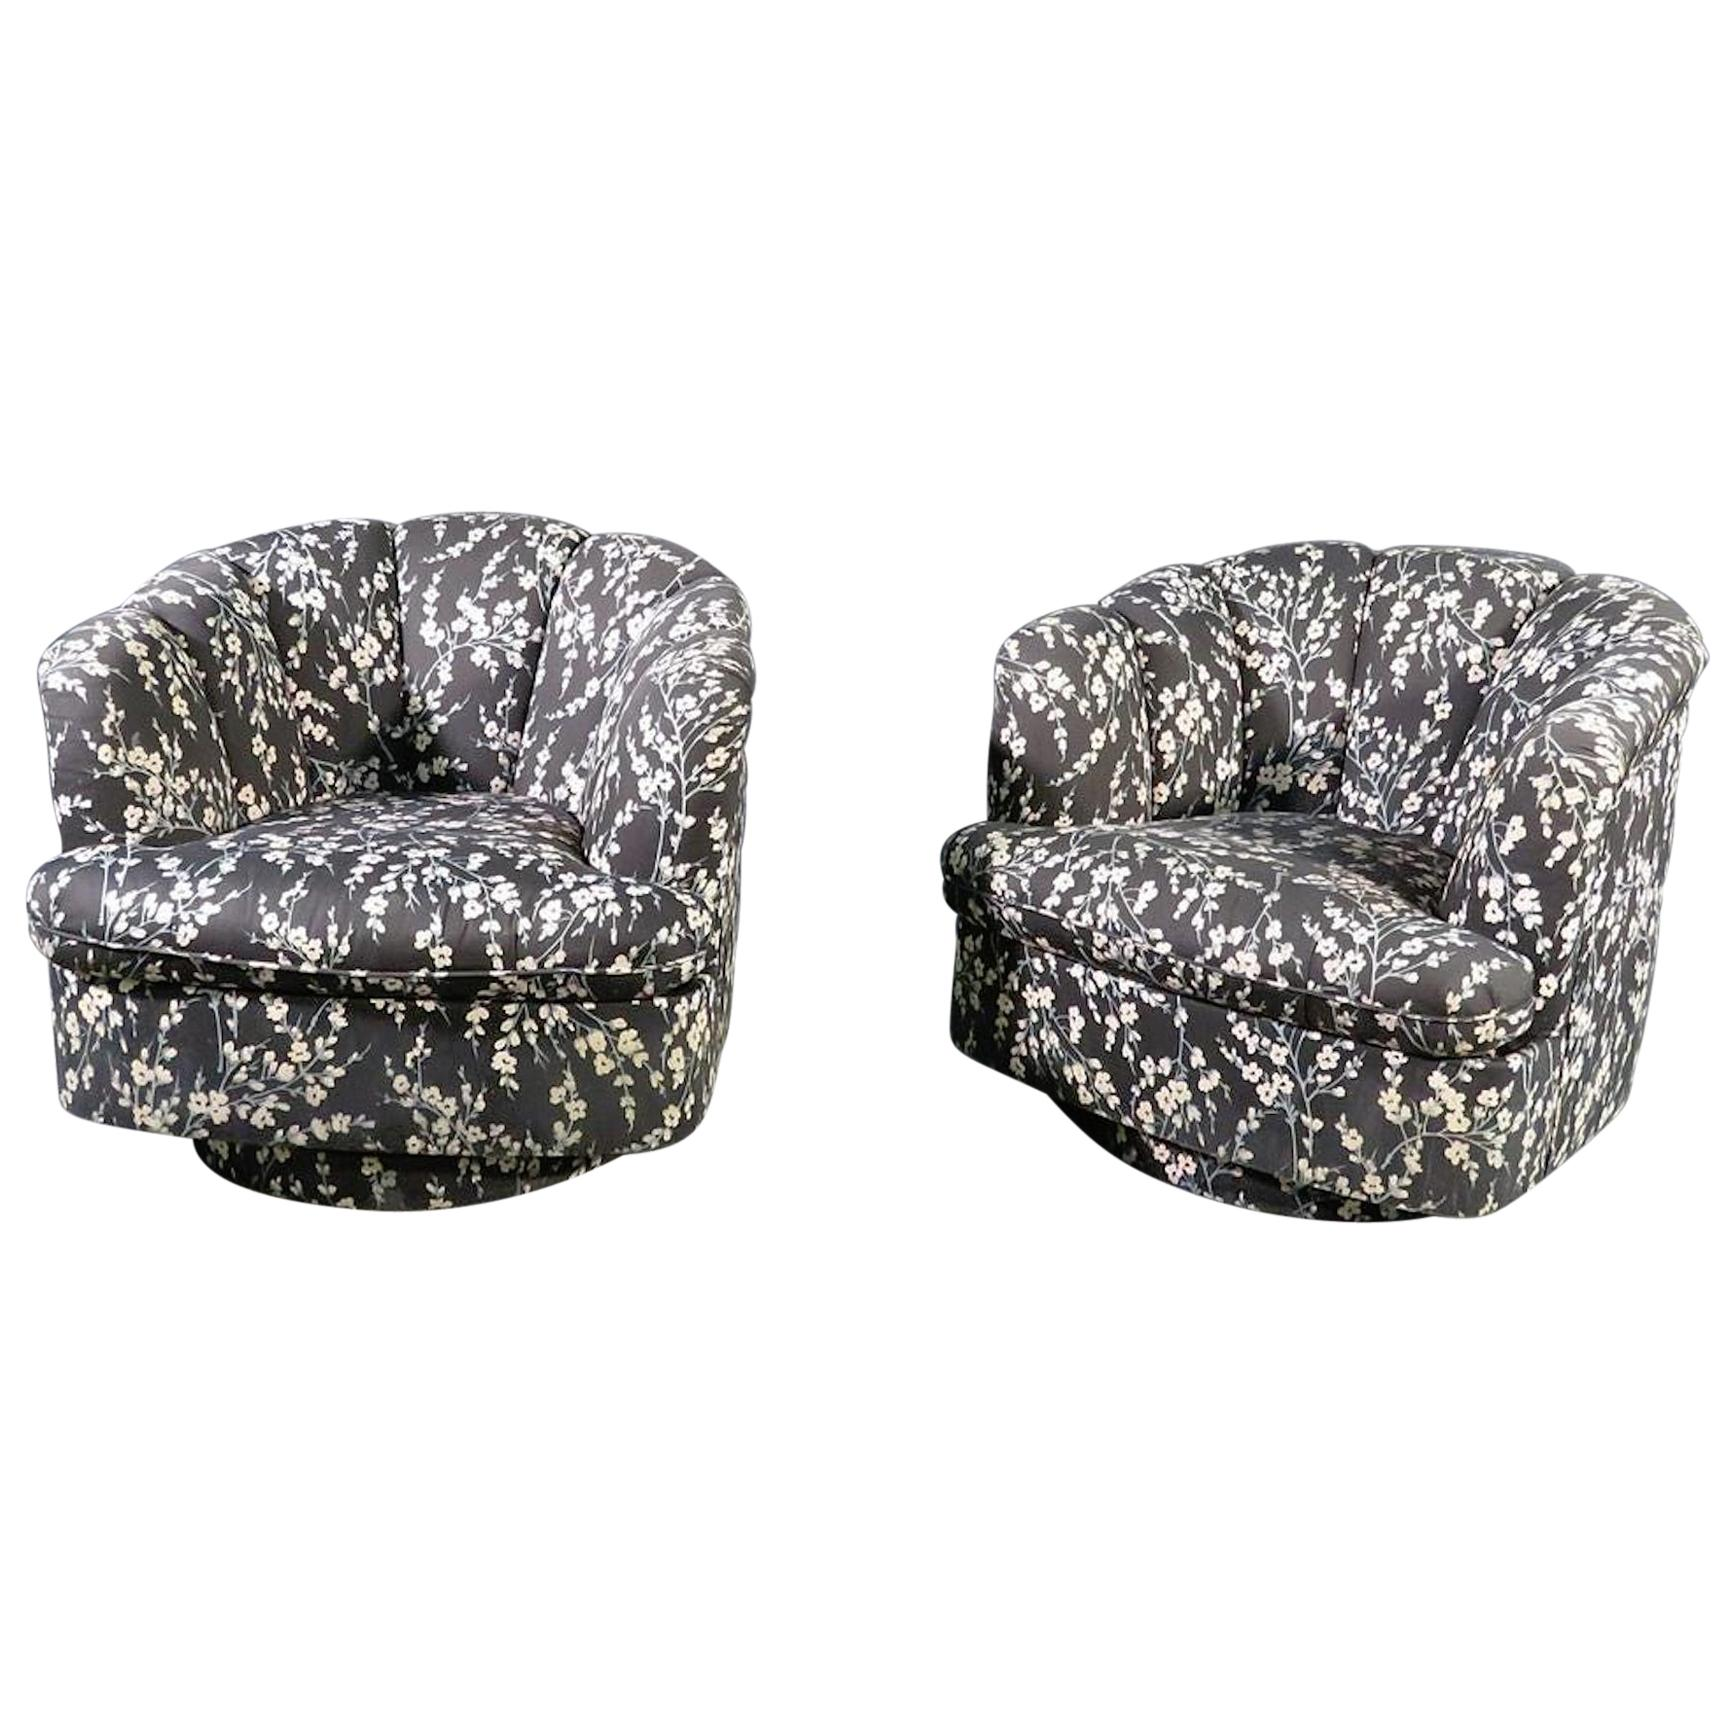 Swivel Chairs by Directional